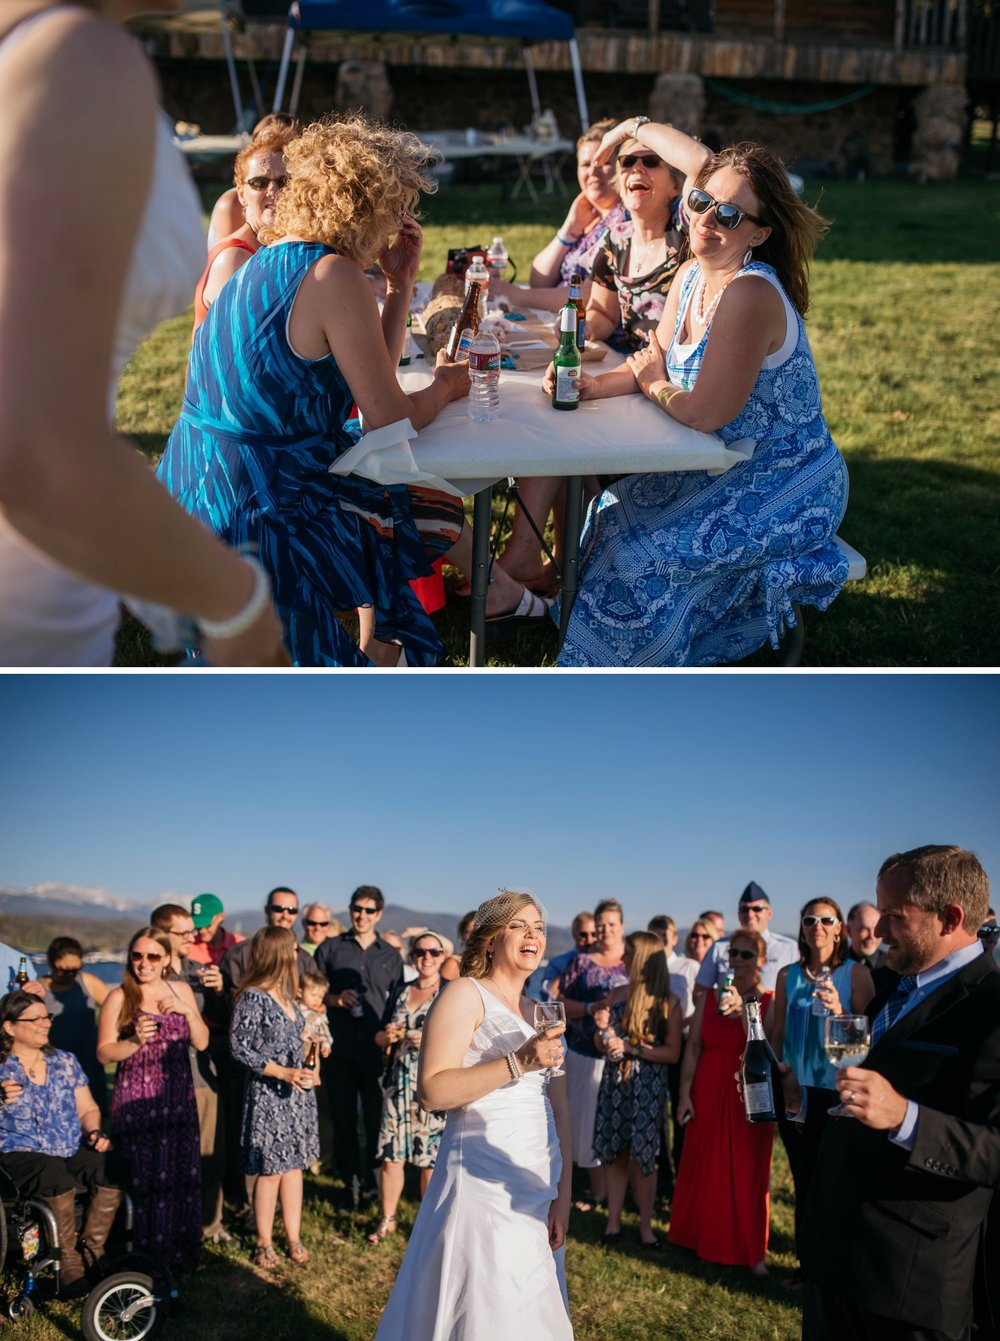 I love small and casual wedding ceremonies! They make weddings feel more comfortable. Photo by Maddie Mae Photography